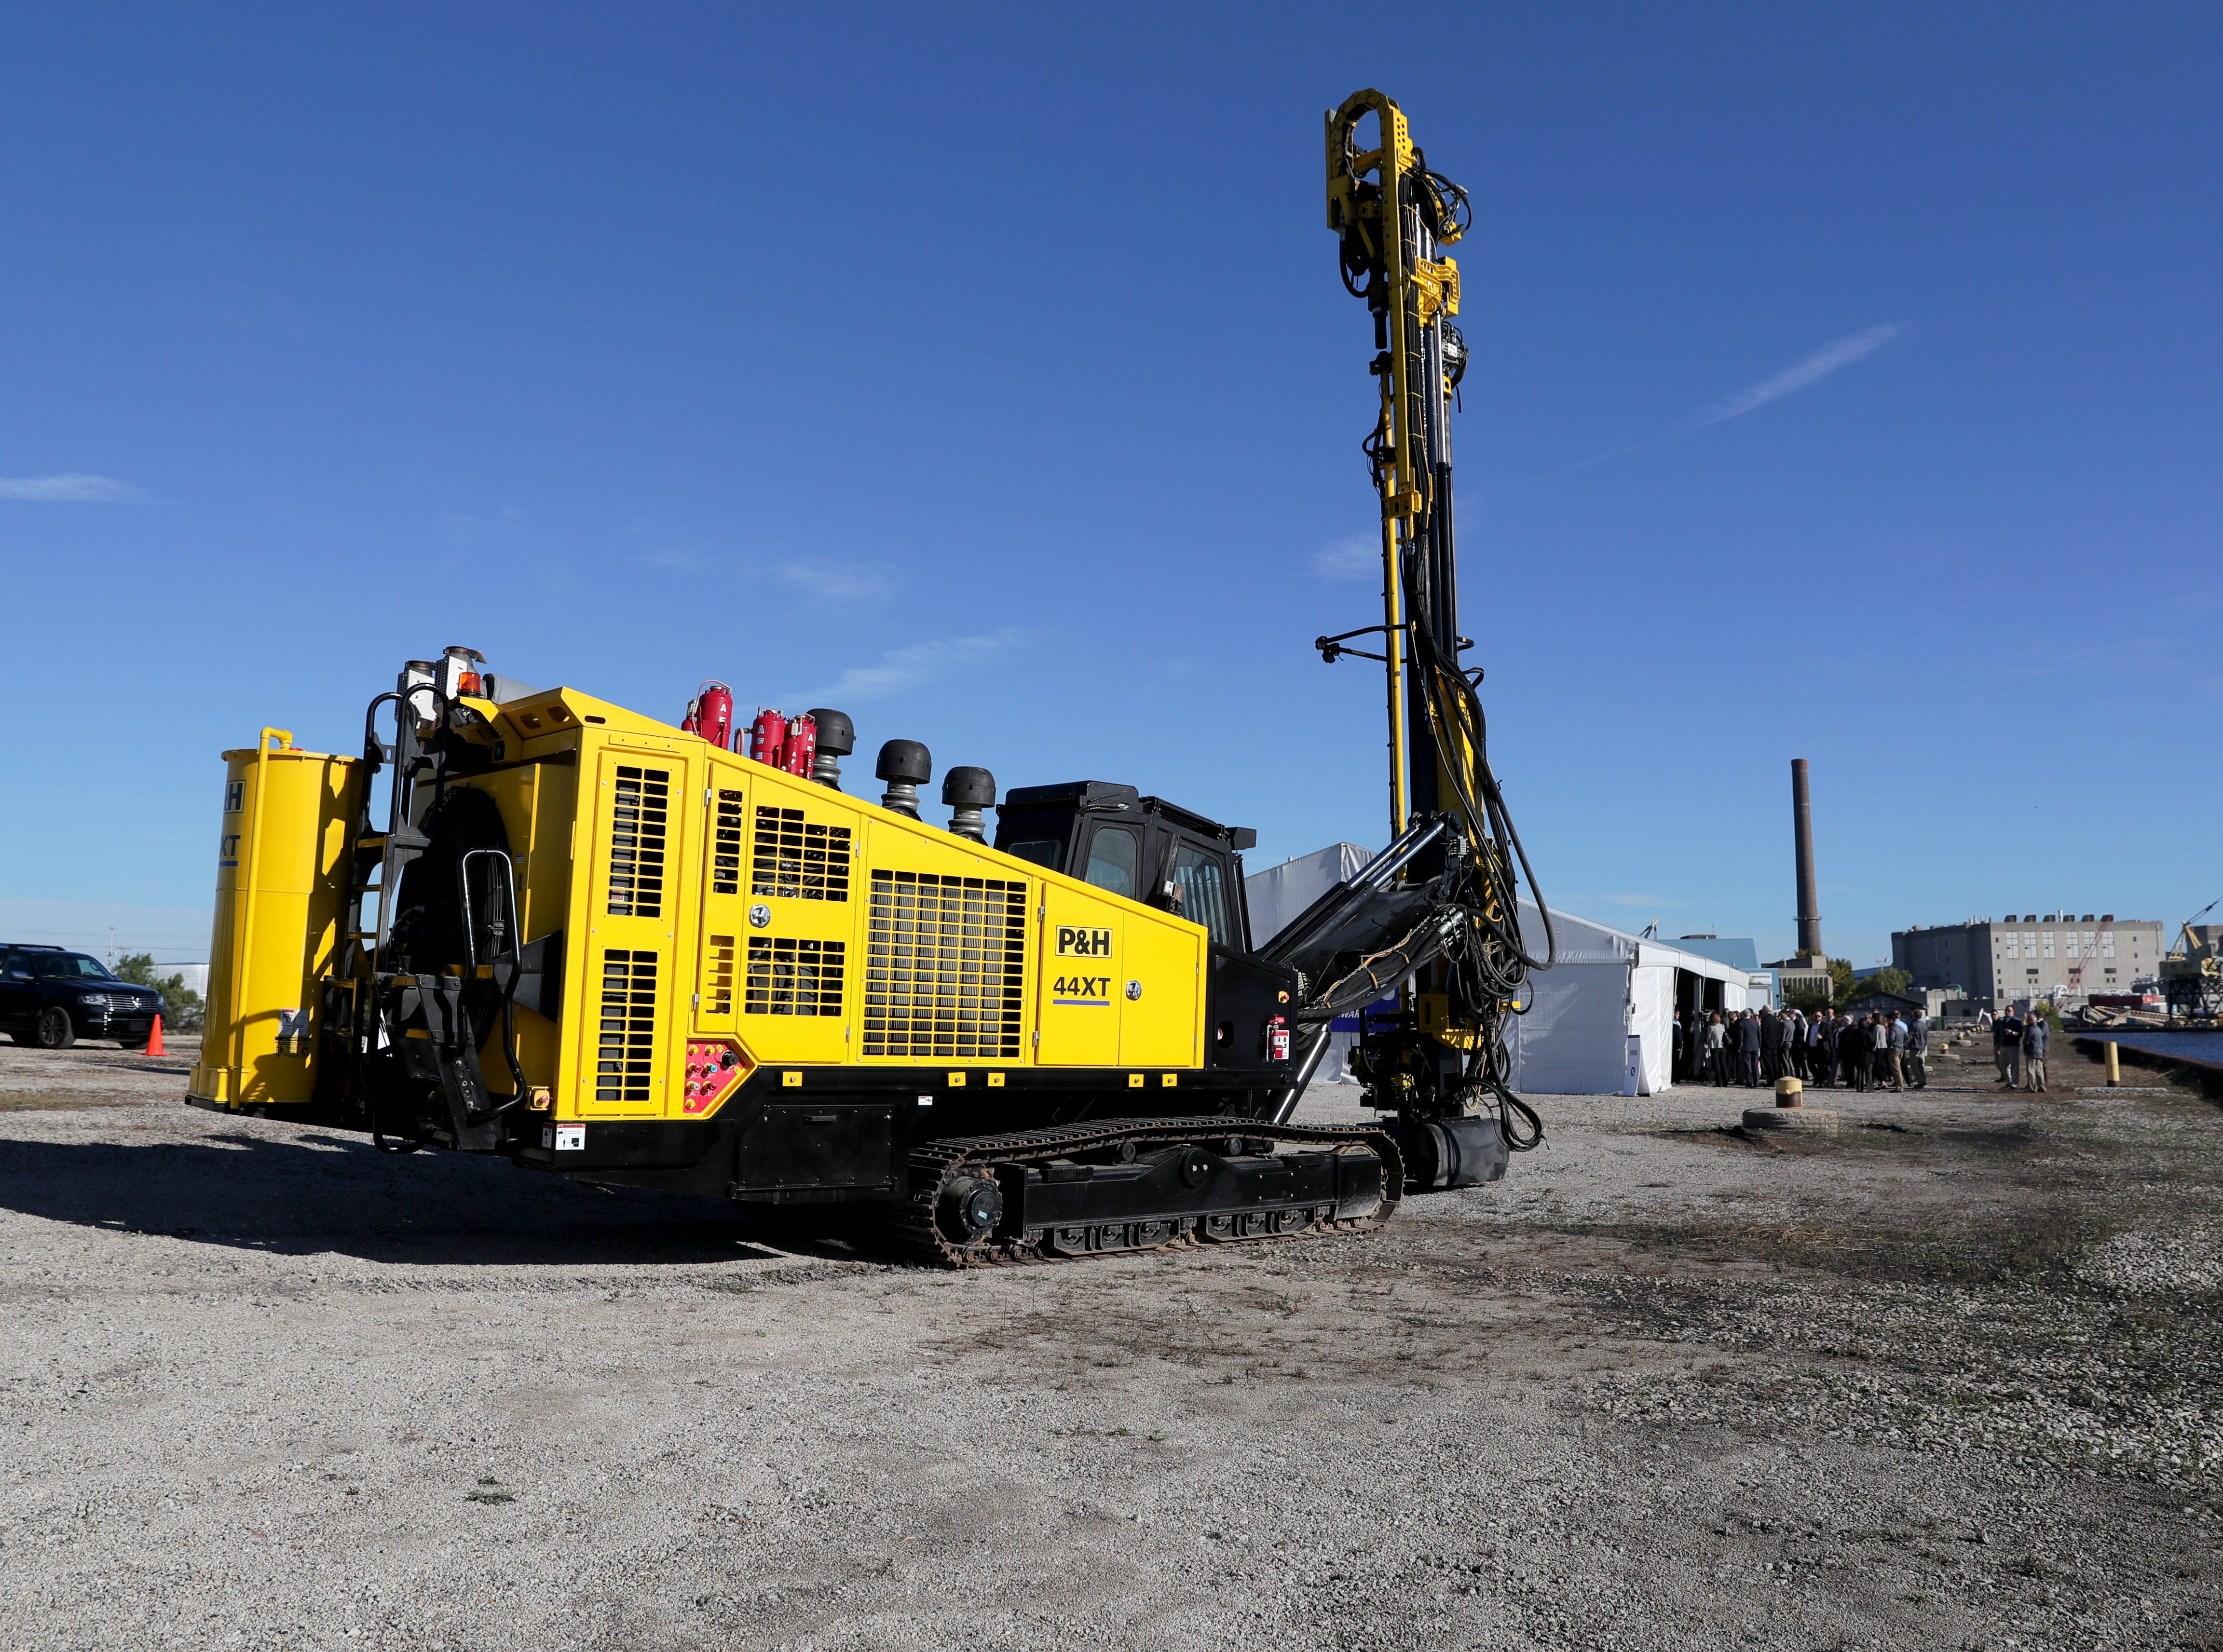 A piece of mining equipment was on display during the announcement.